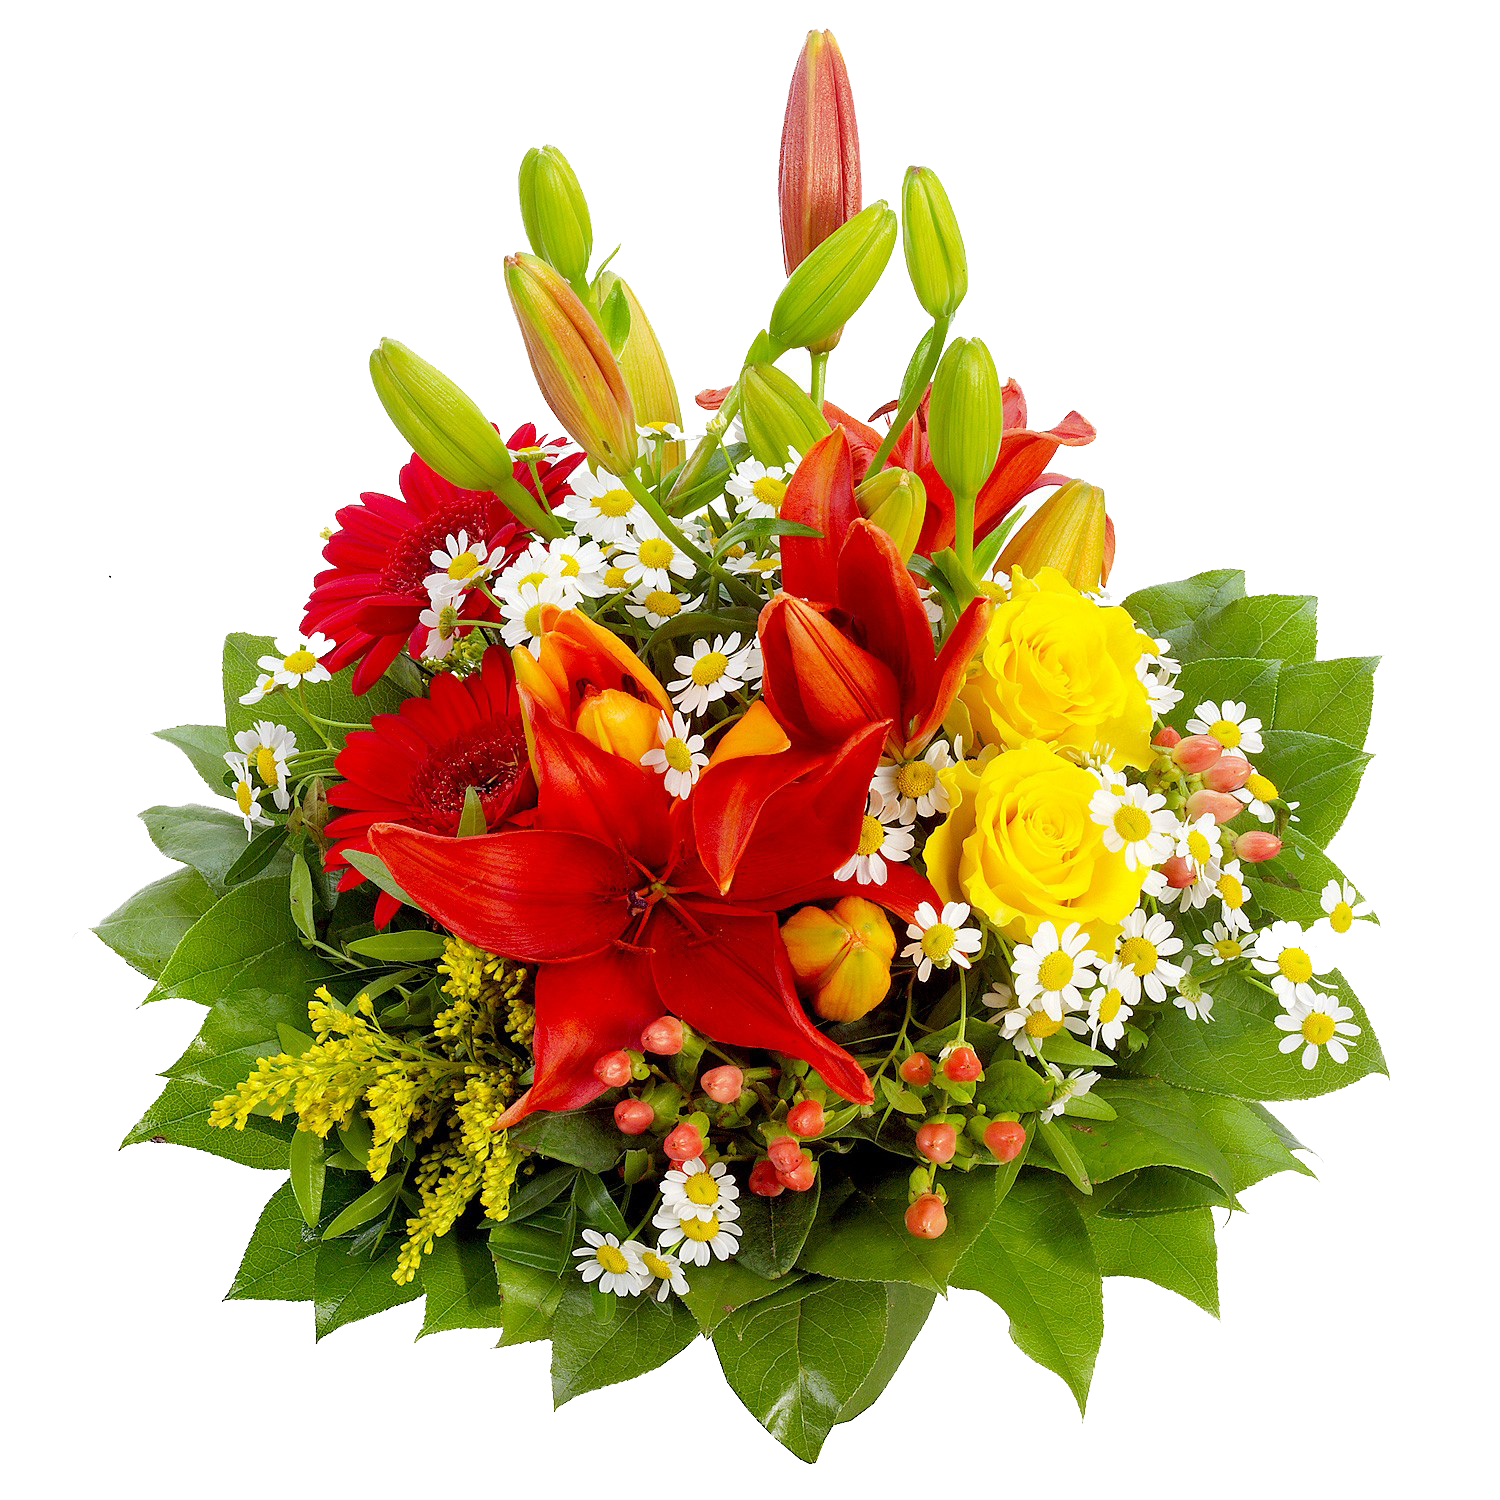 Png flowers. Bouquet images transparent free